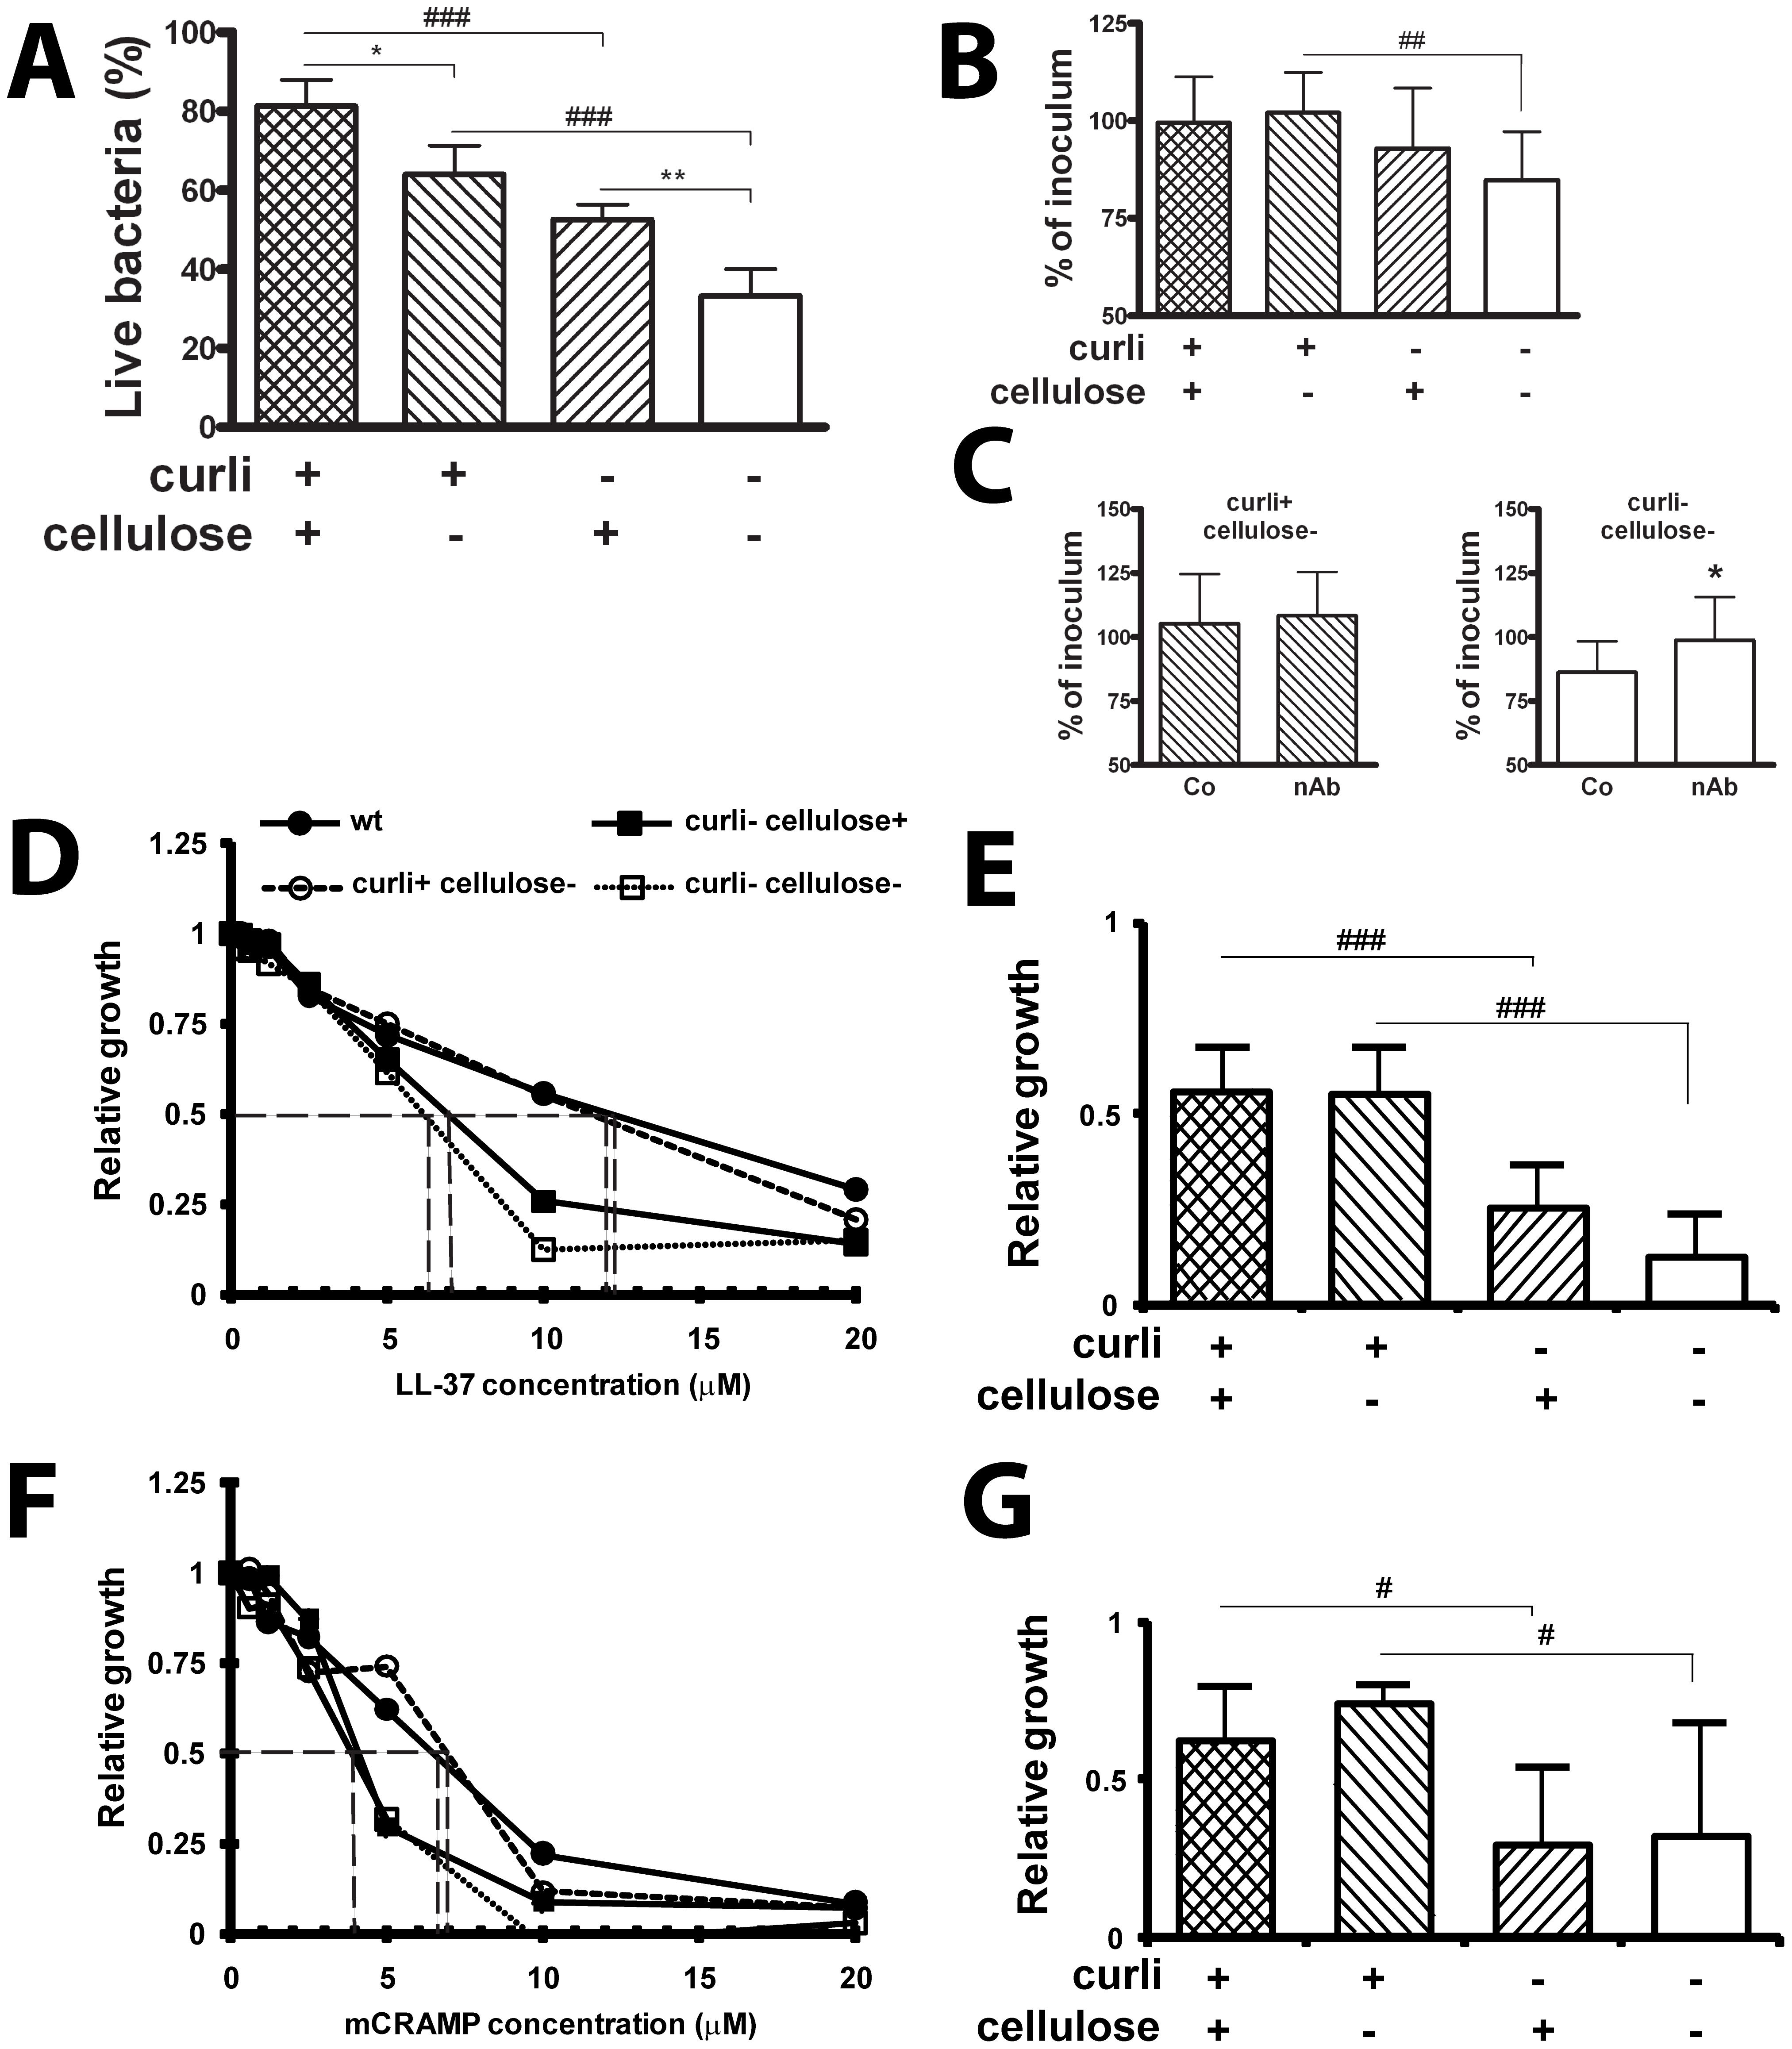 Curli increase the resistance to the antimicrobial peptide LL-37.